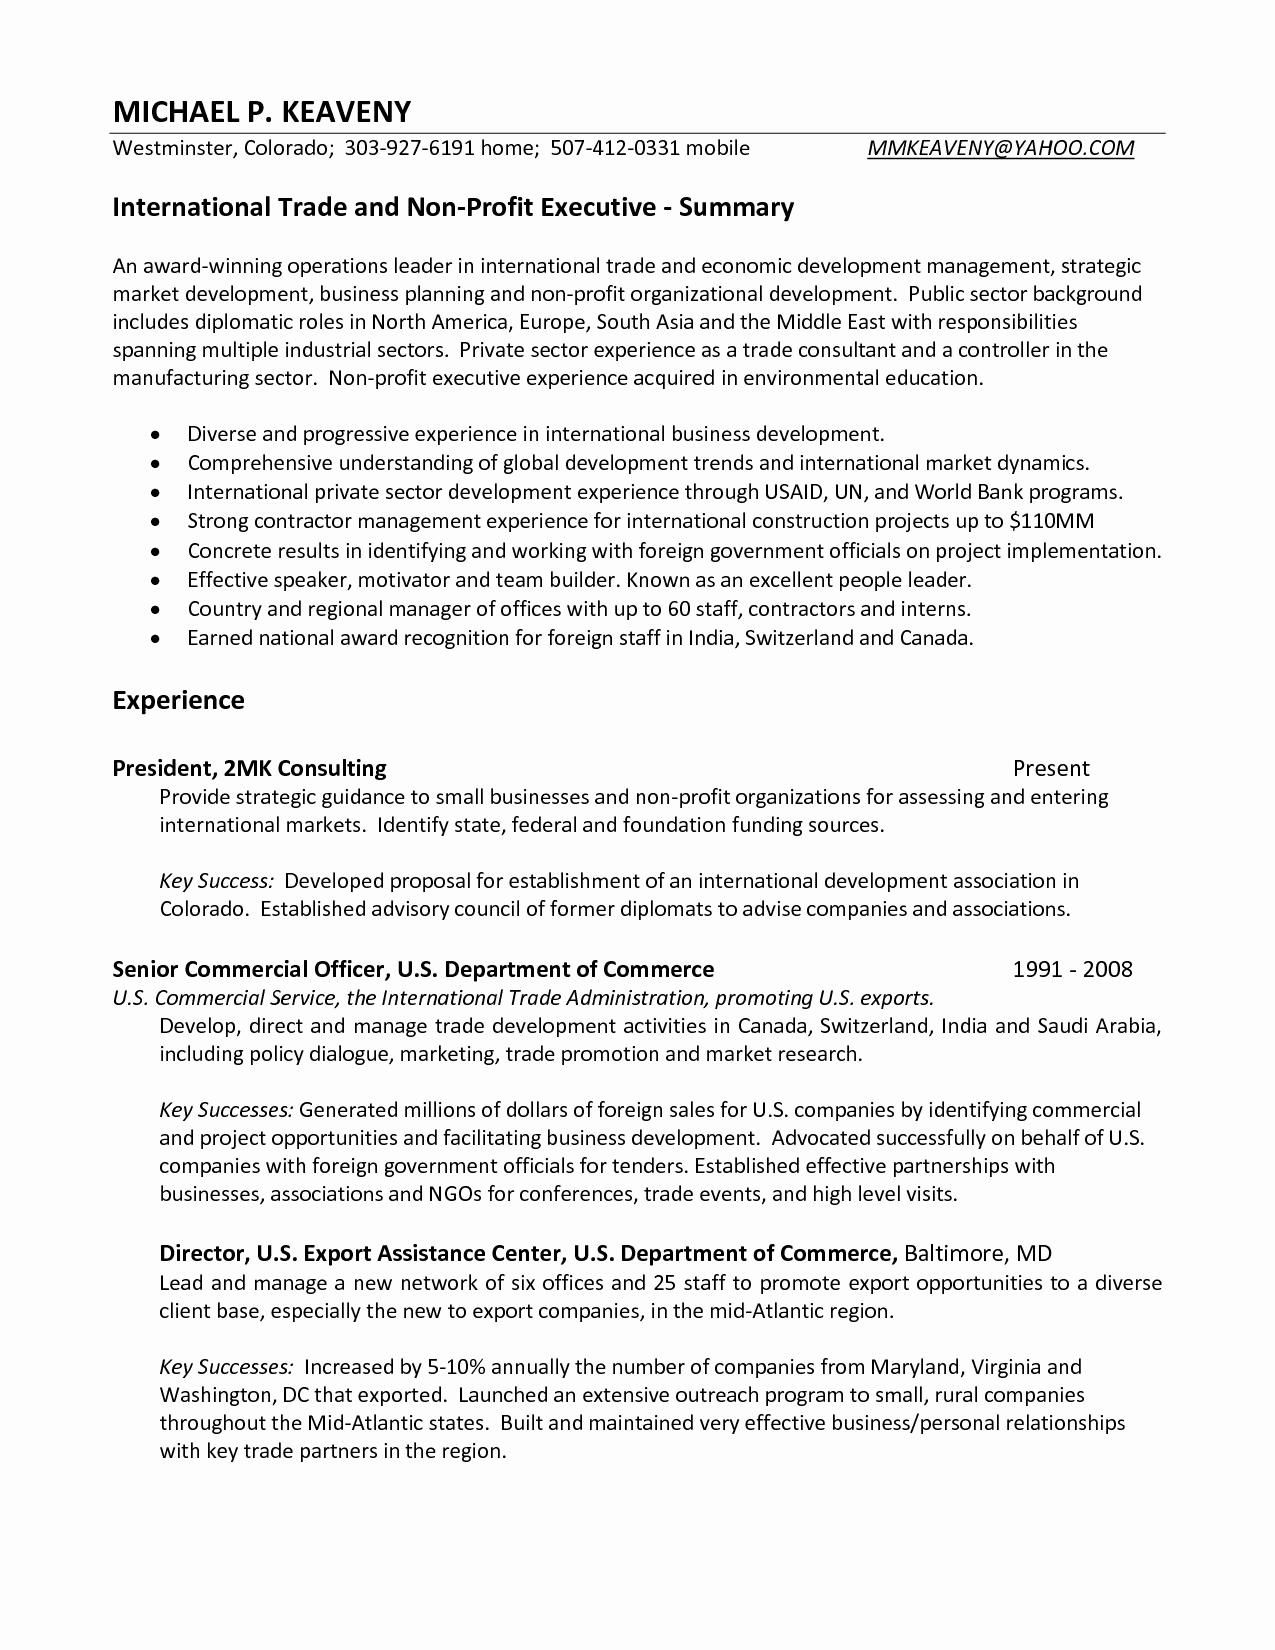 Extensive Resume Sample Extensive Resume Sample Extensive Resume Sample Business Resume Example Marketing Resume Mission Statement Examples Resume Examples